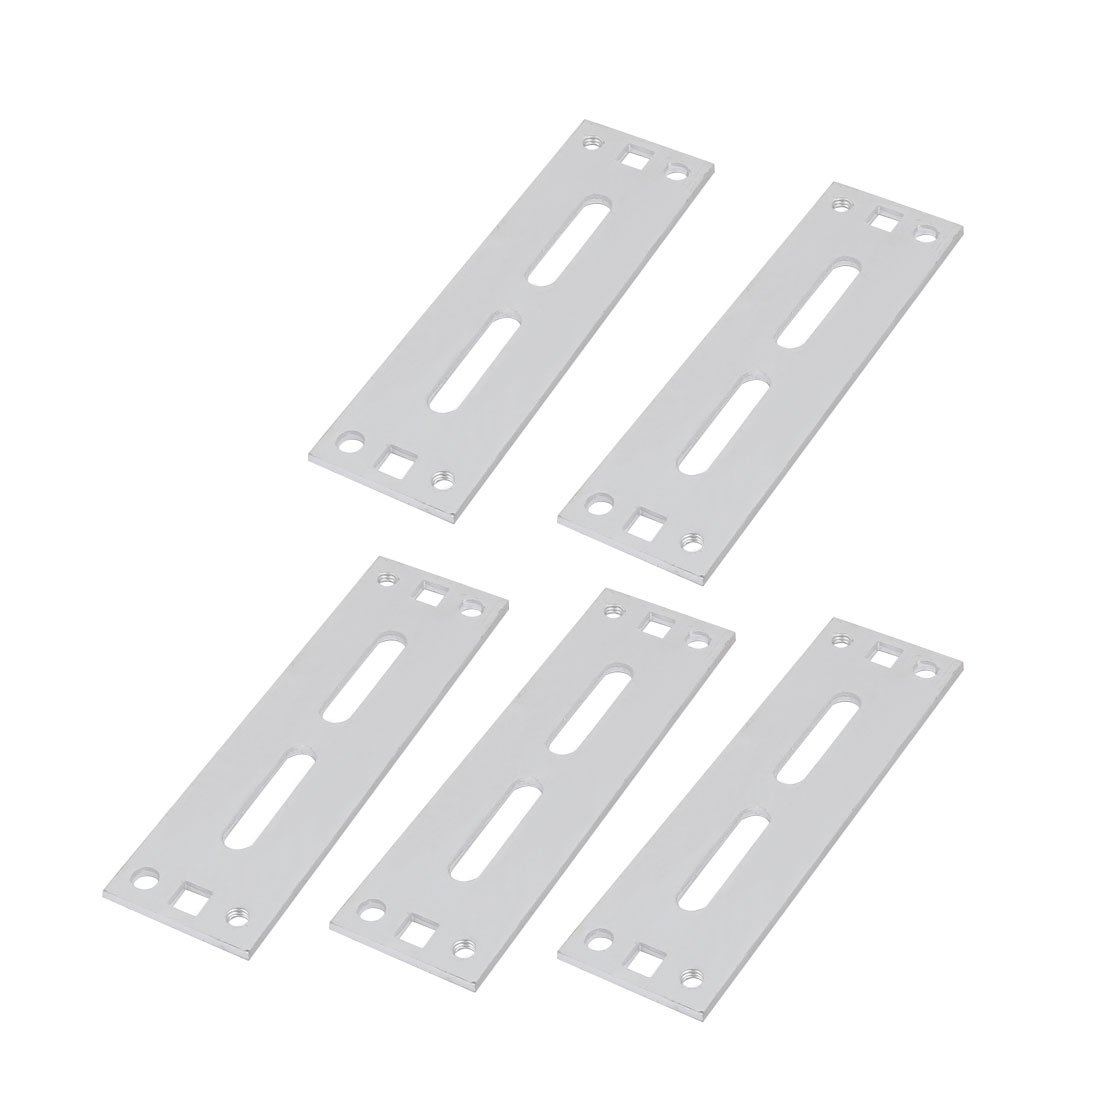 uxcell 5pcs Aluminum Alloy 135mmx40mmx3.4mm Cable Holder Wire Organizer for Home Office